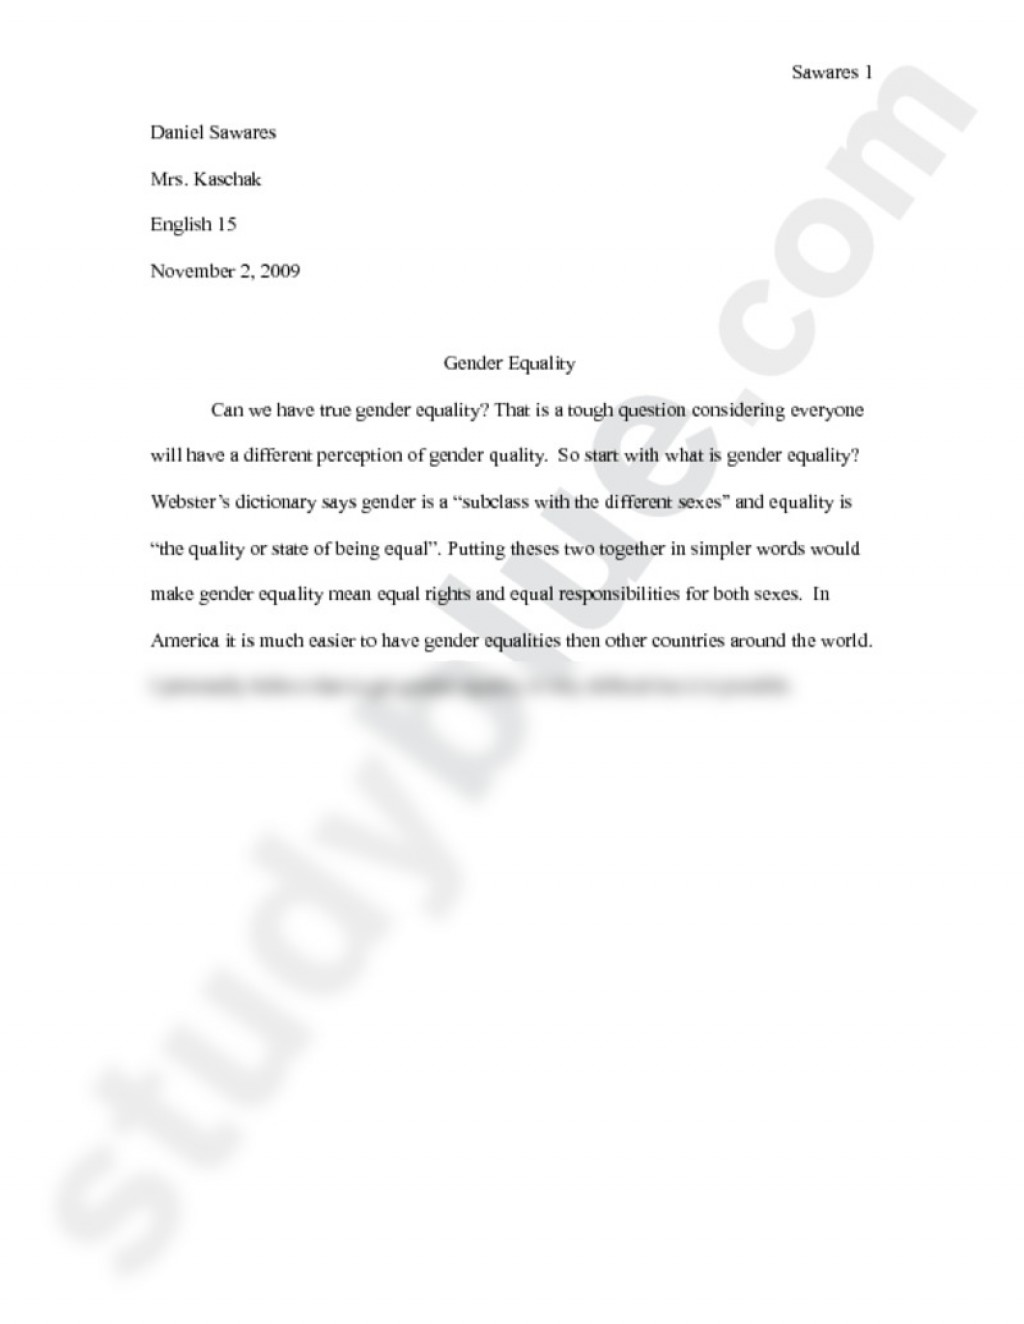 020 Preview0 Essay Example Gender Top Equality Outline Research Paper 300 Words Large